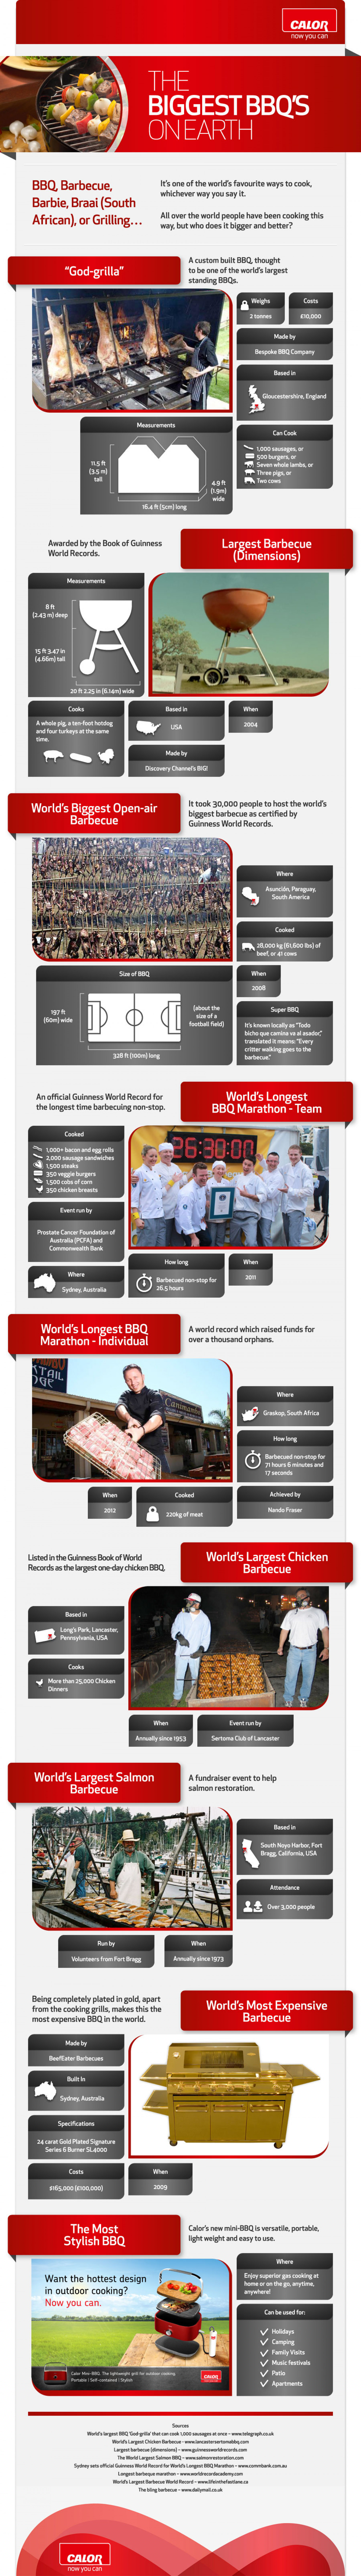 The Biggest BBQ's On Earth [Infographic] Infographic